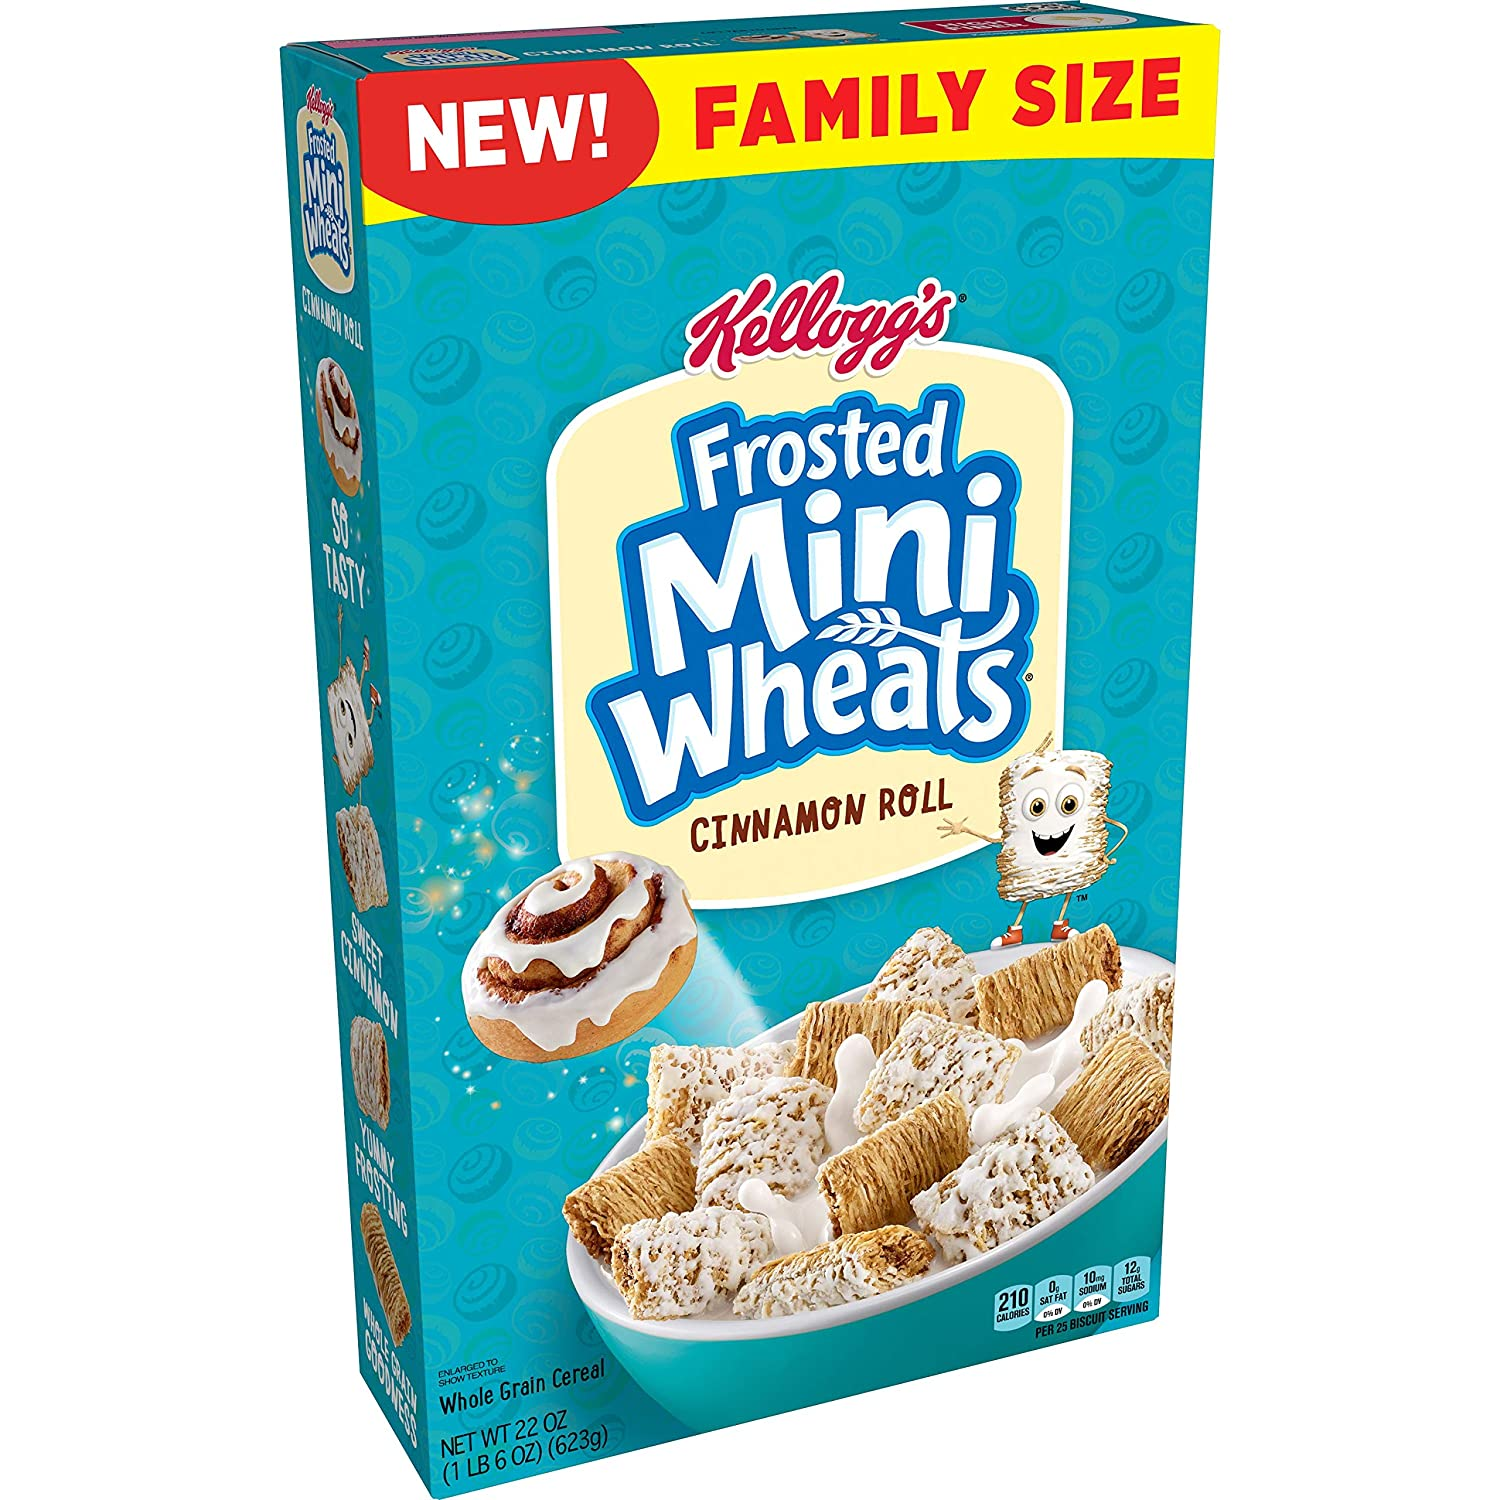 Kellogg's Frosted Mini Wheats, Breakfast Cereal, Cinnamon Roll, High Fiber Food, Family Size, 22oz Box(Pack of 8)